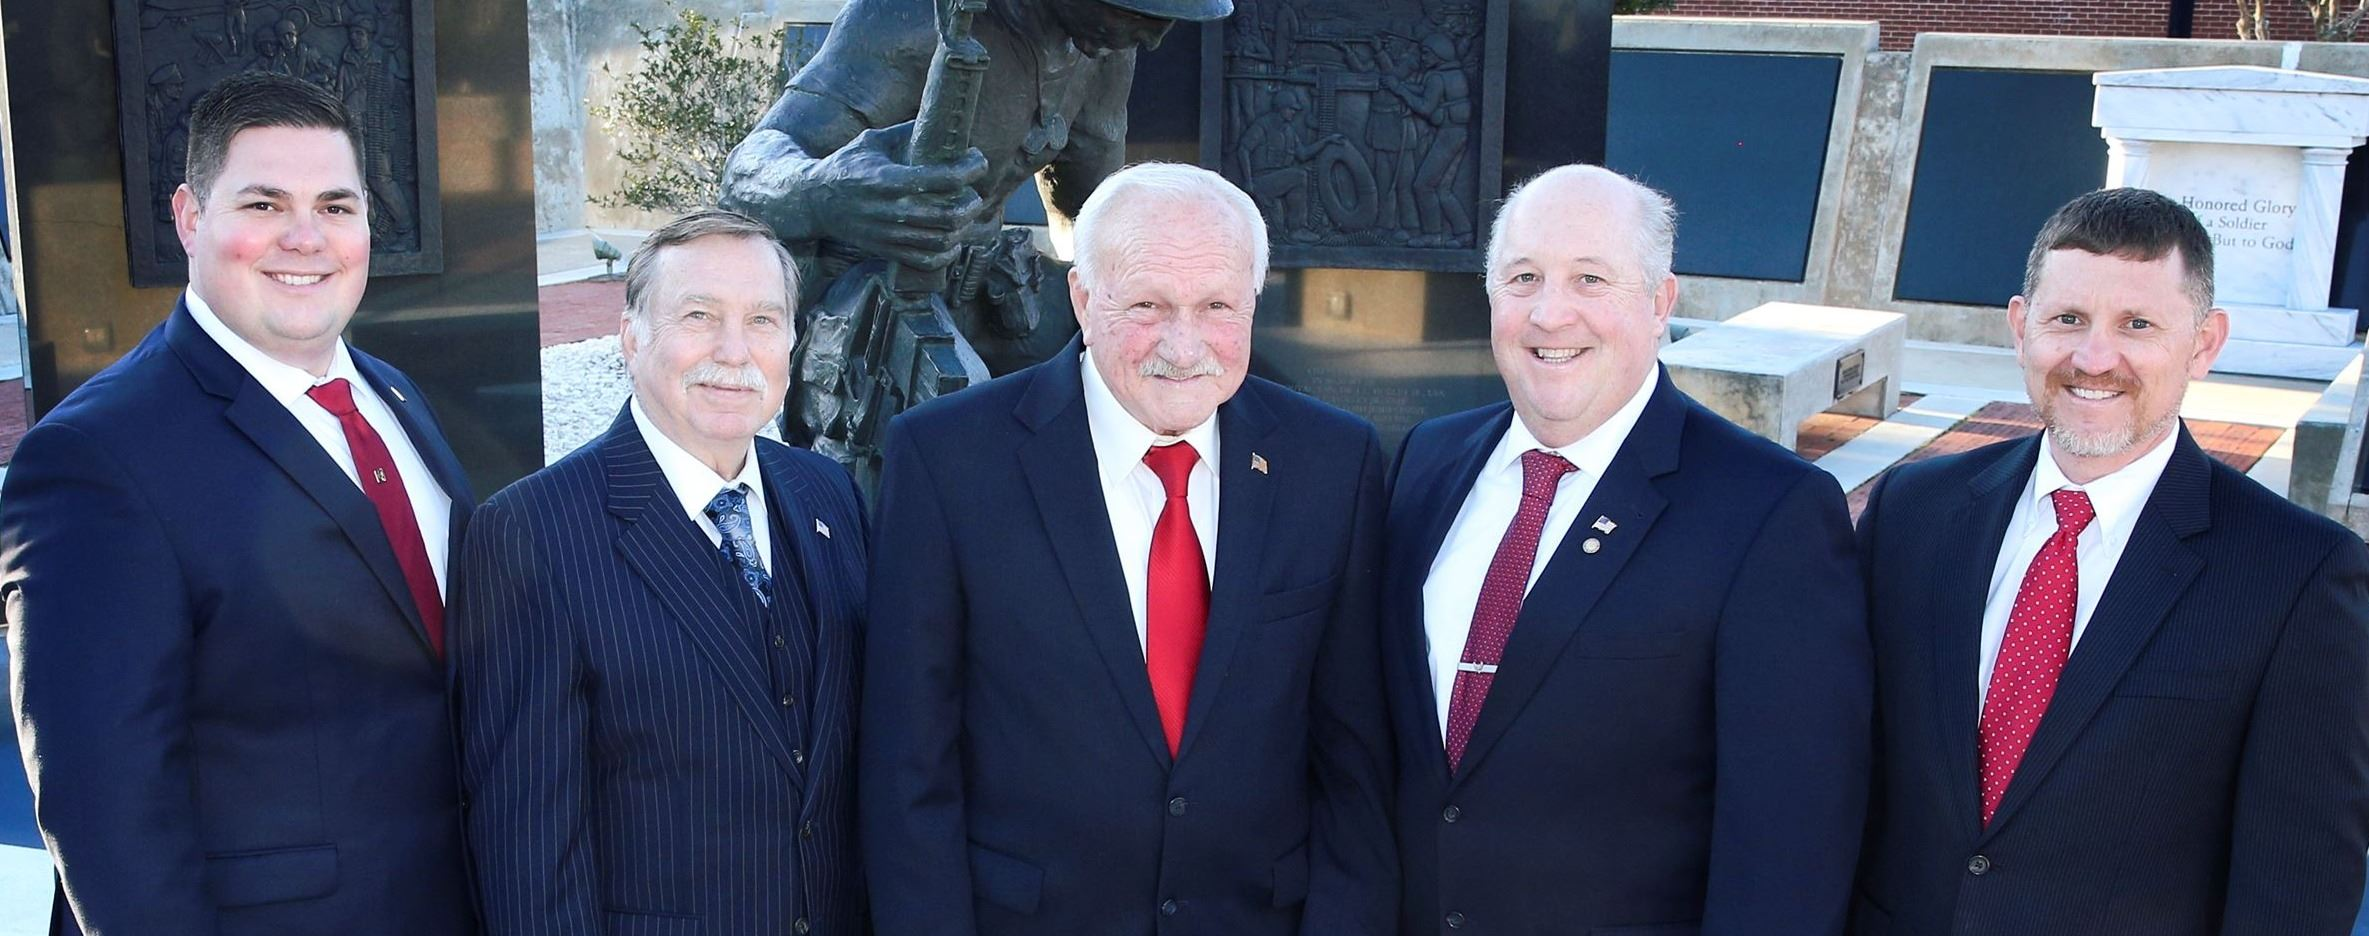 2019 Commissioners at Veteran's Memorial Plaza